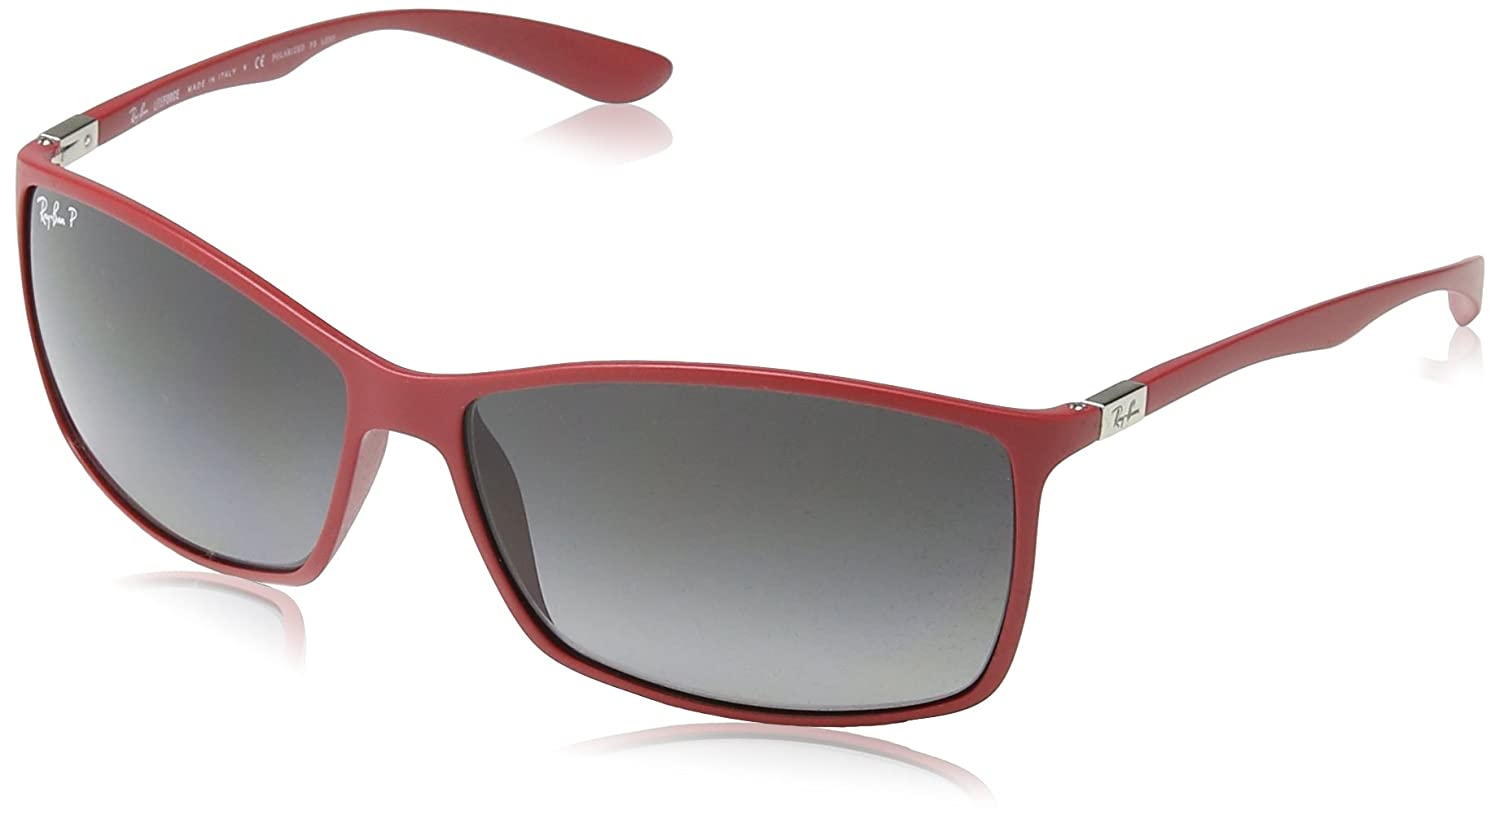 f57a9d2b6f Ray-Ban Liteforce Classic Rectangle Sunglasses in Matte Red RB4179 6123T3 62  62 Gradient Grey Polarised  Amazon.ca  Luggage   Bags